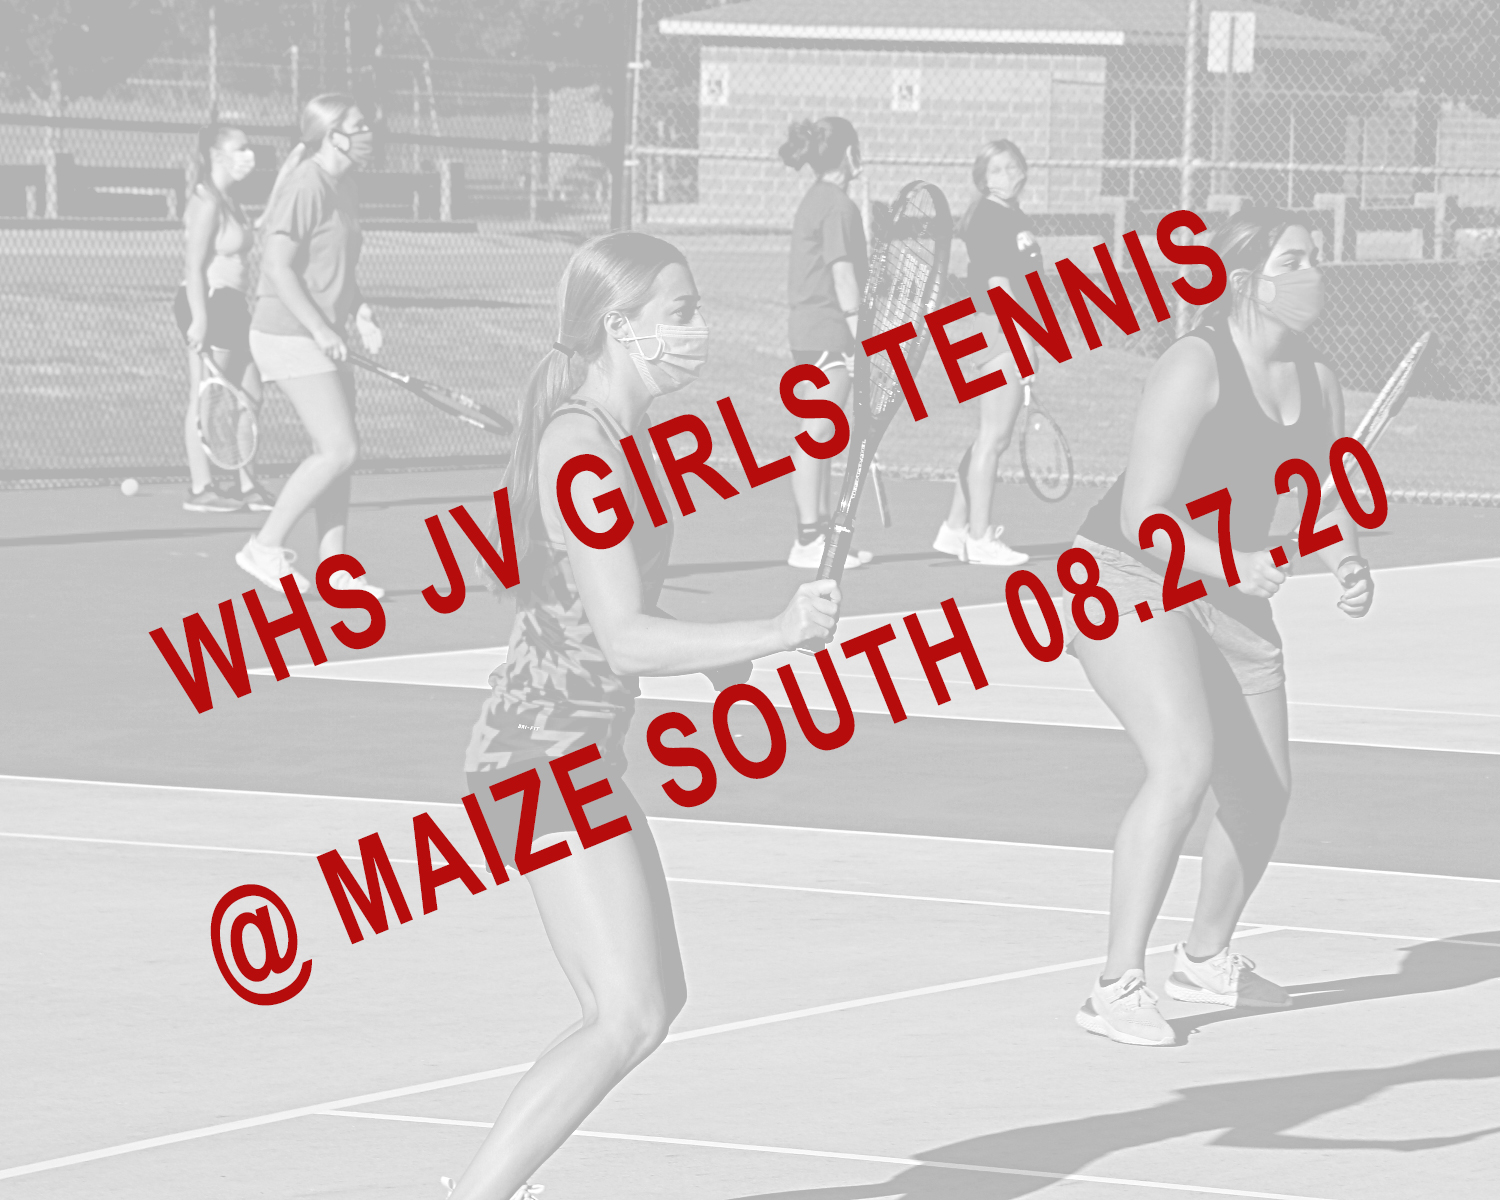 JV Girls @ Maize South